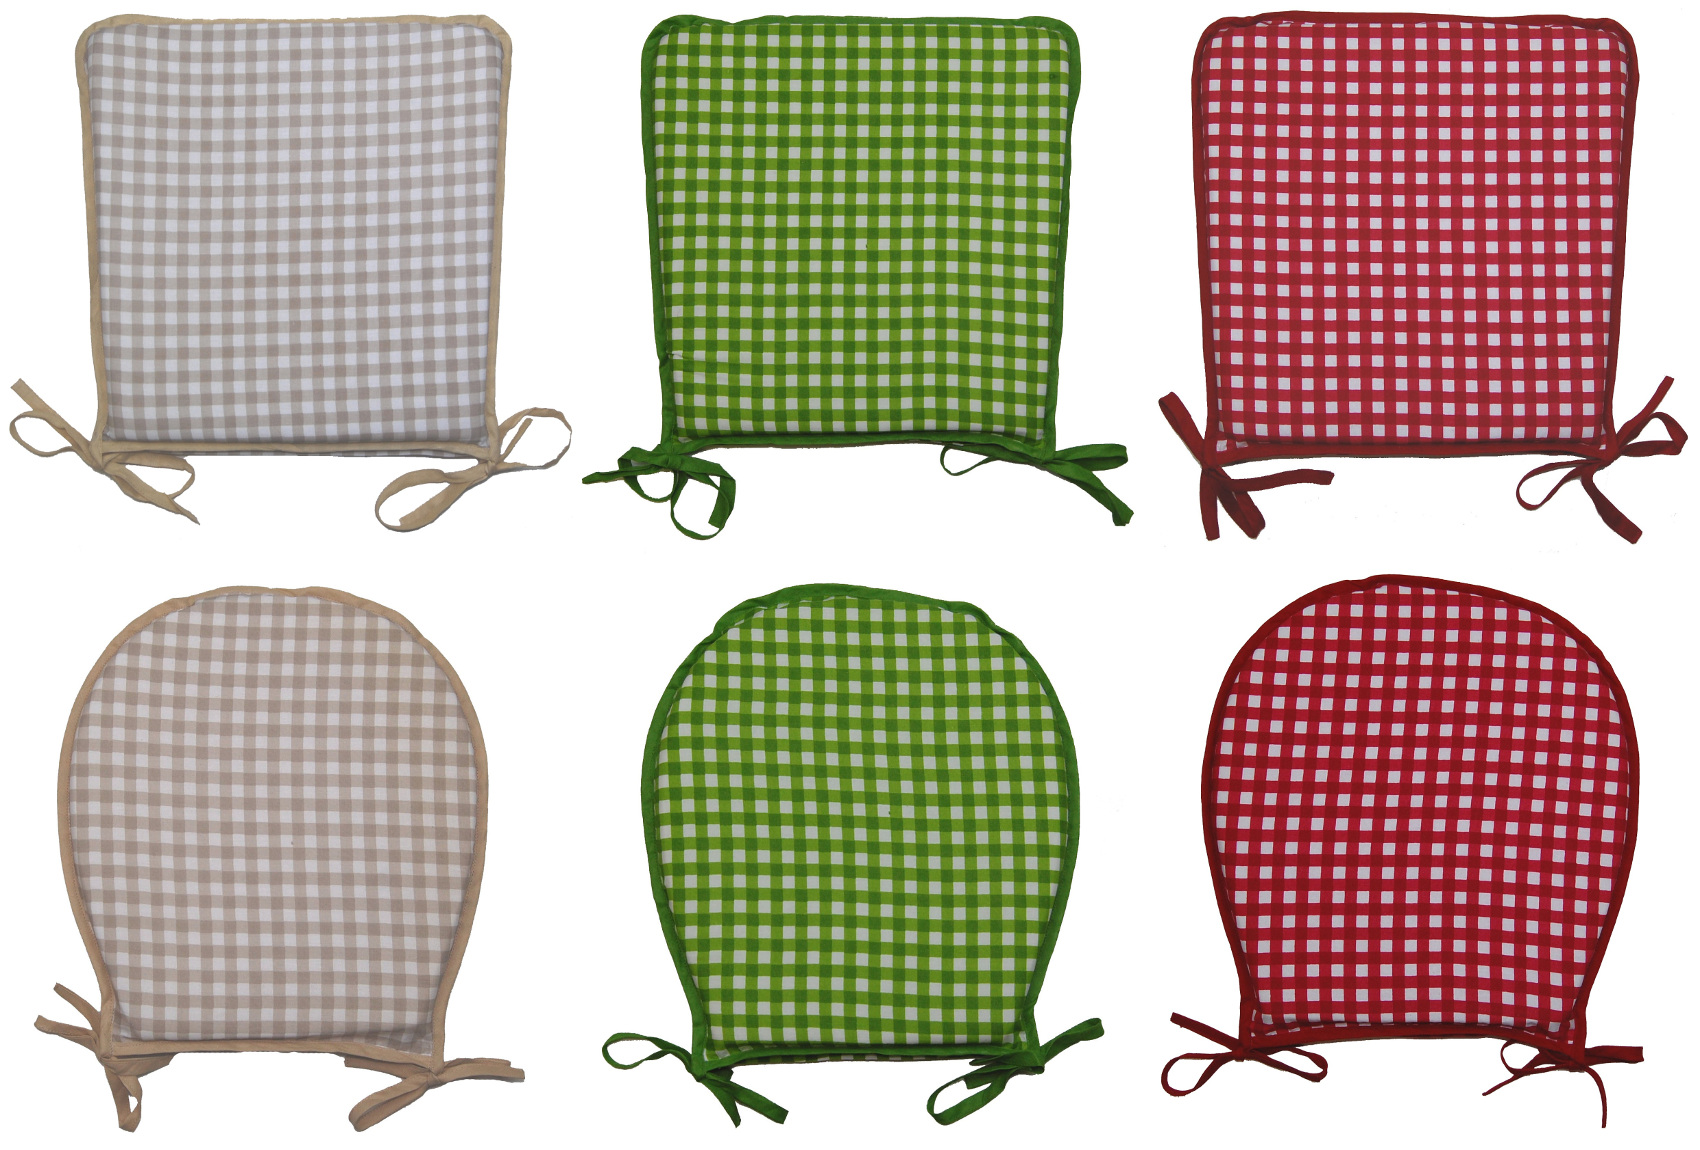 red kitchen chair pads rv captain chairs for sale garden seat pad 100 cotton gingham check dining